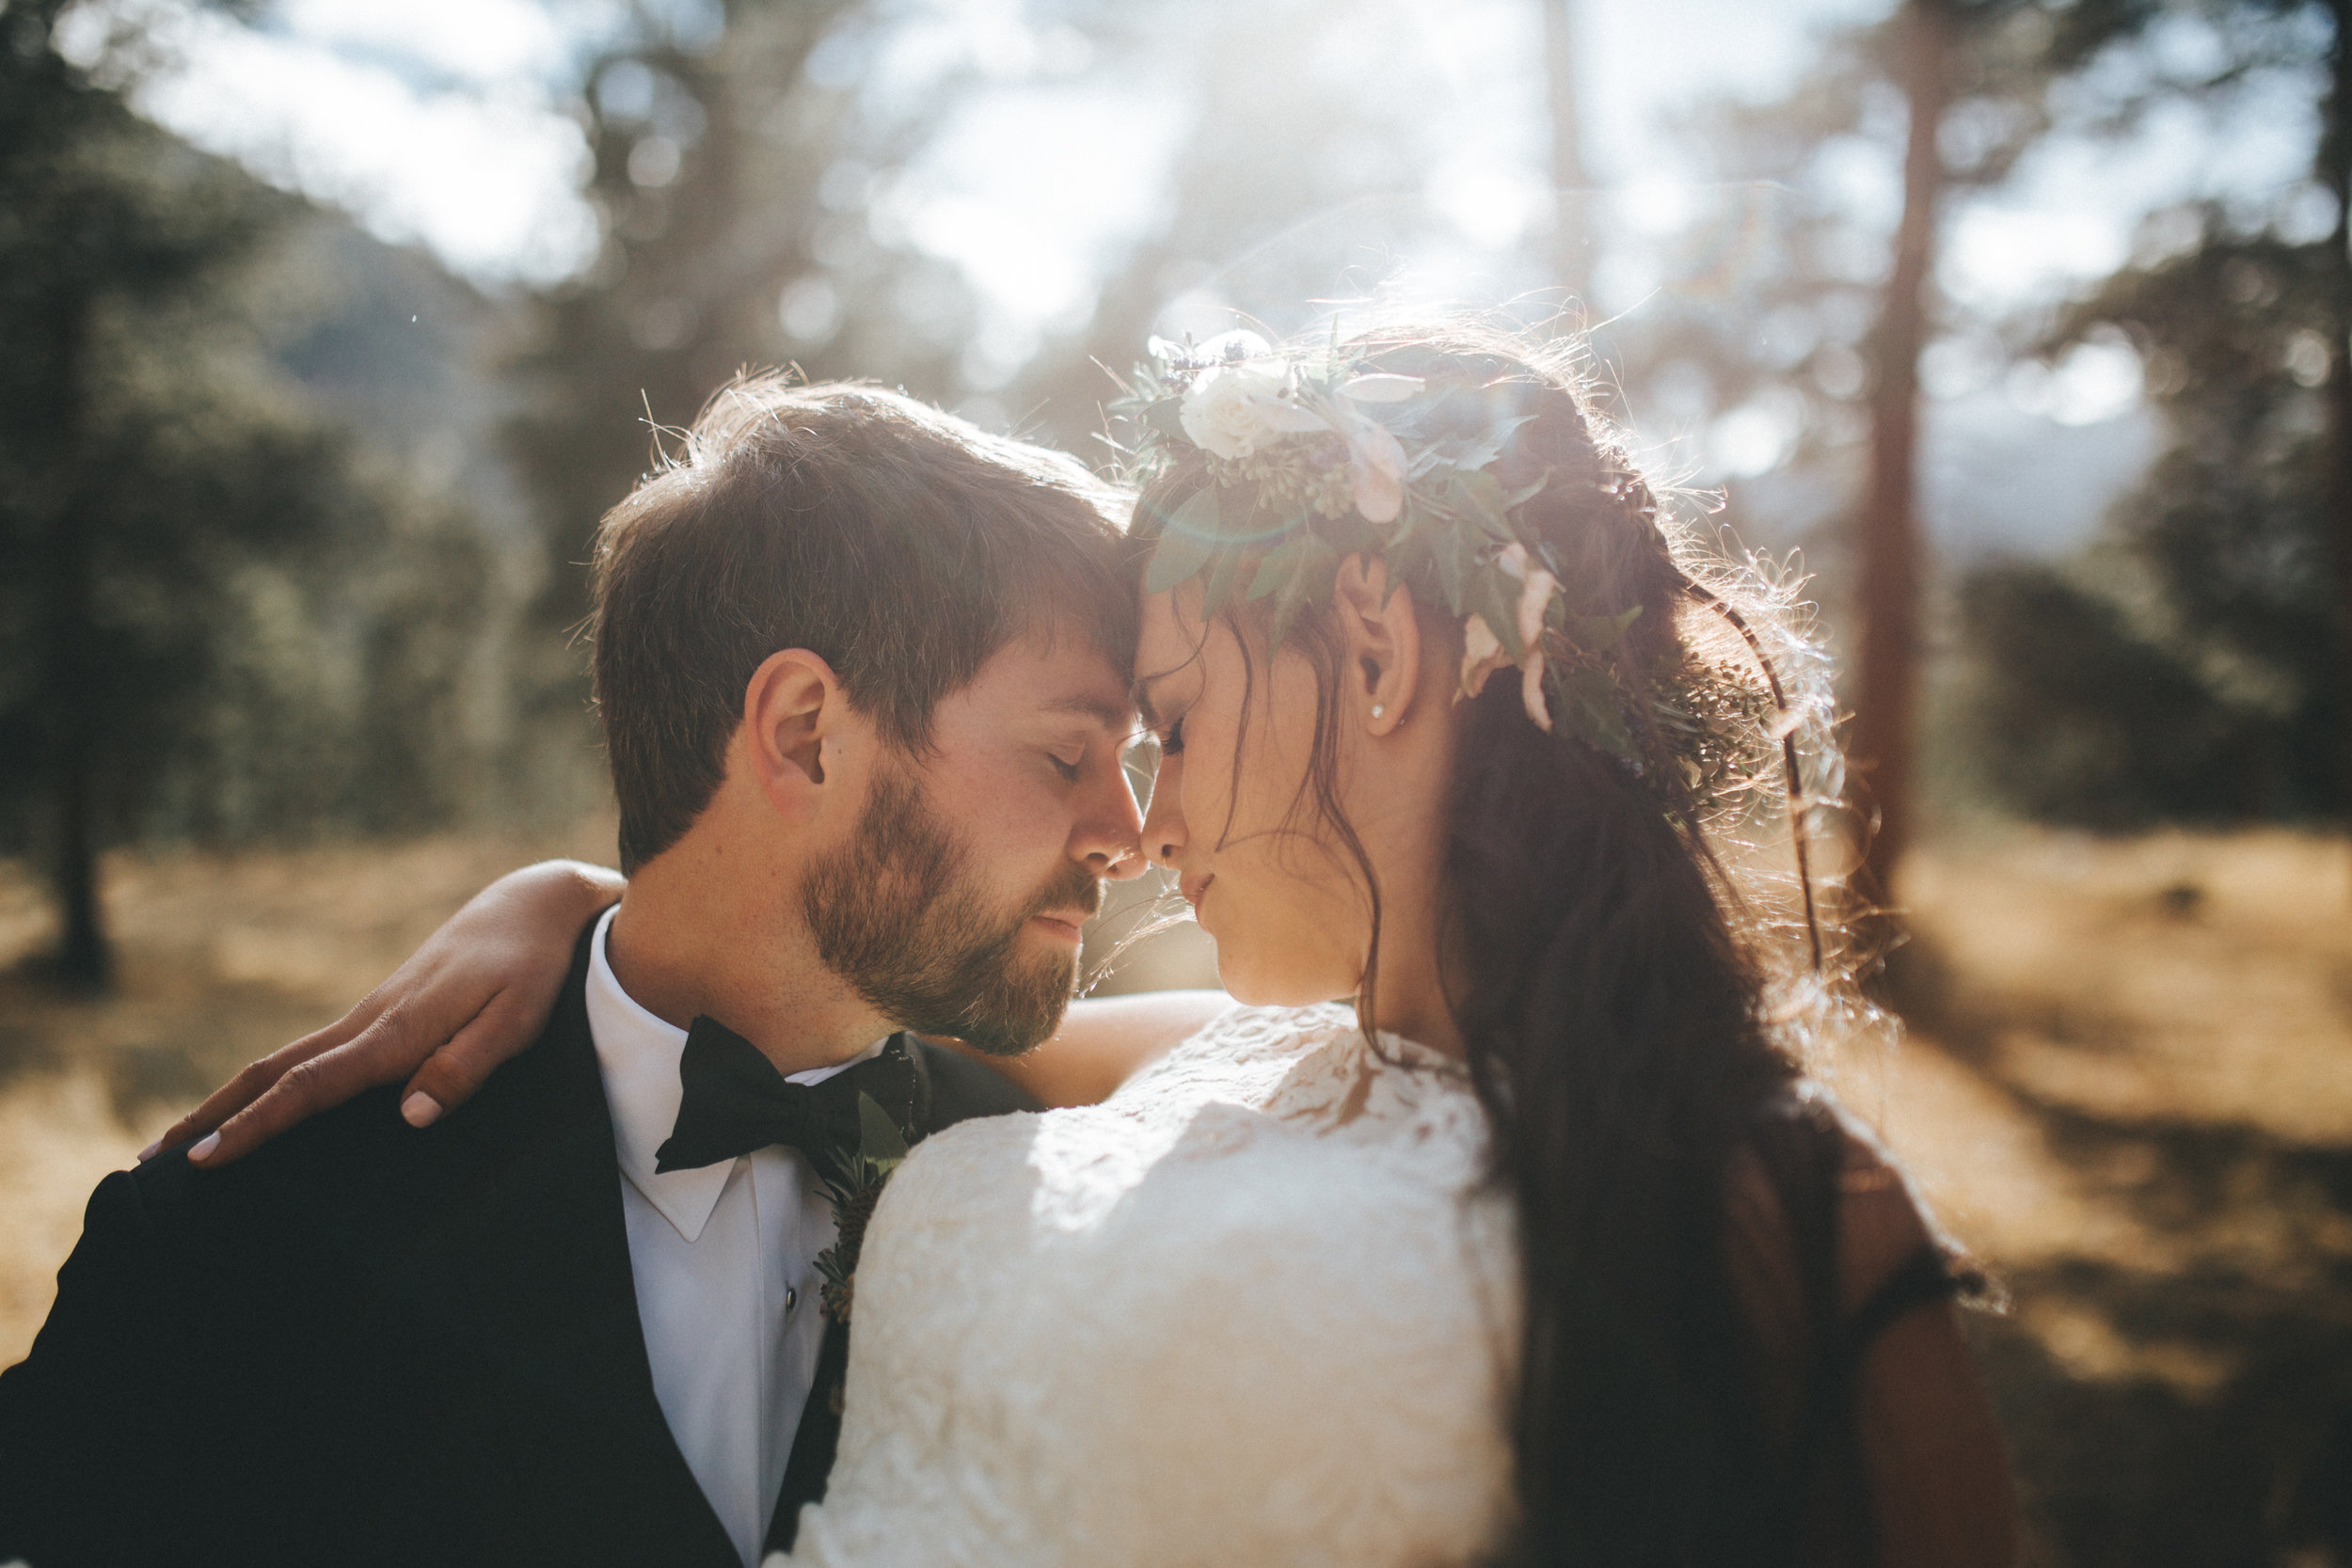 portraitshalloweenwedding-83.jpg